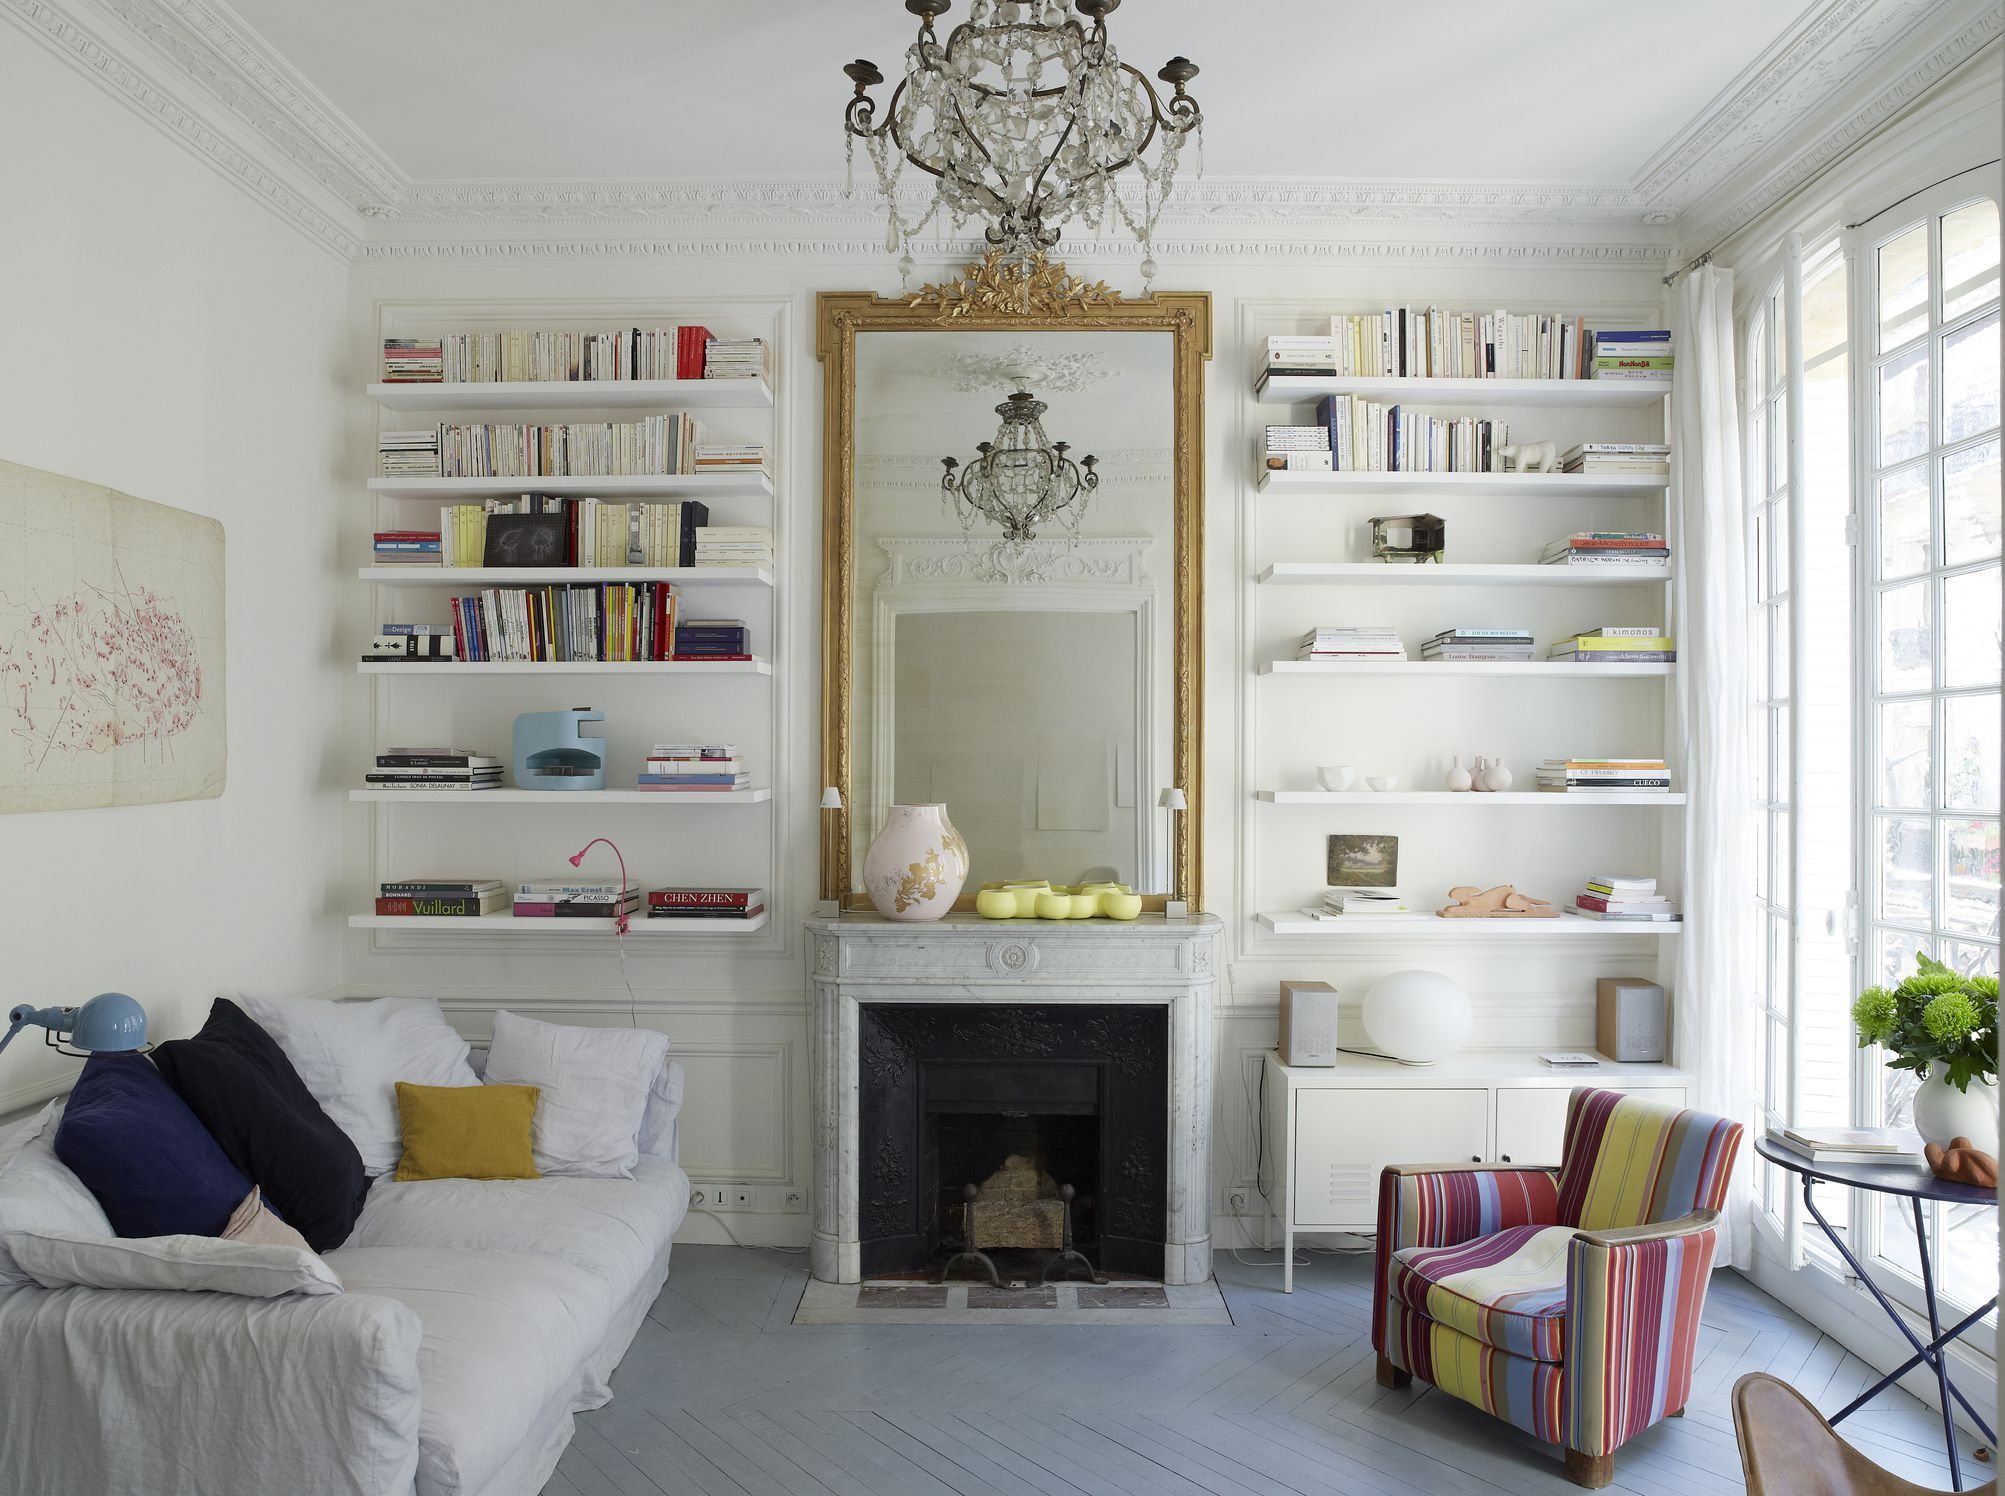 The living room can benefit a lot with mirrors. Source: The Spruce